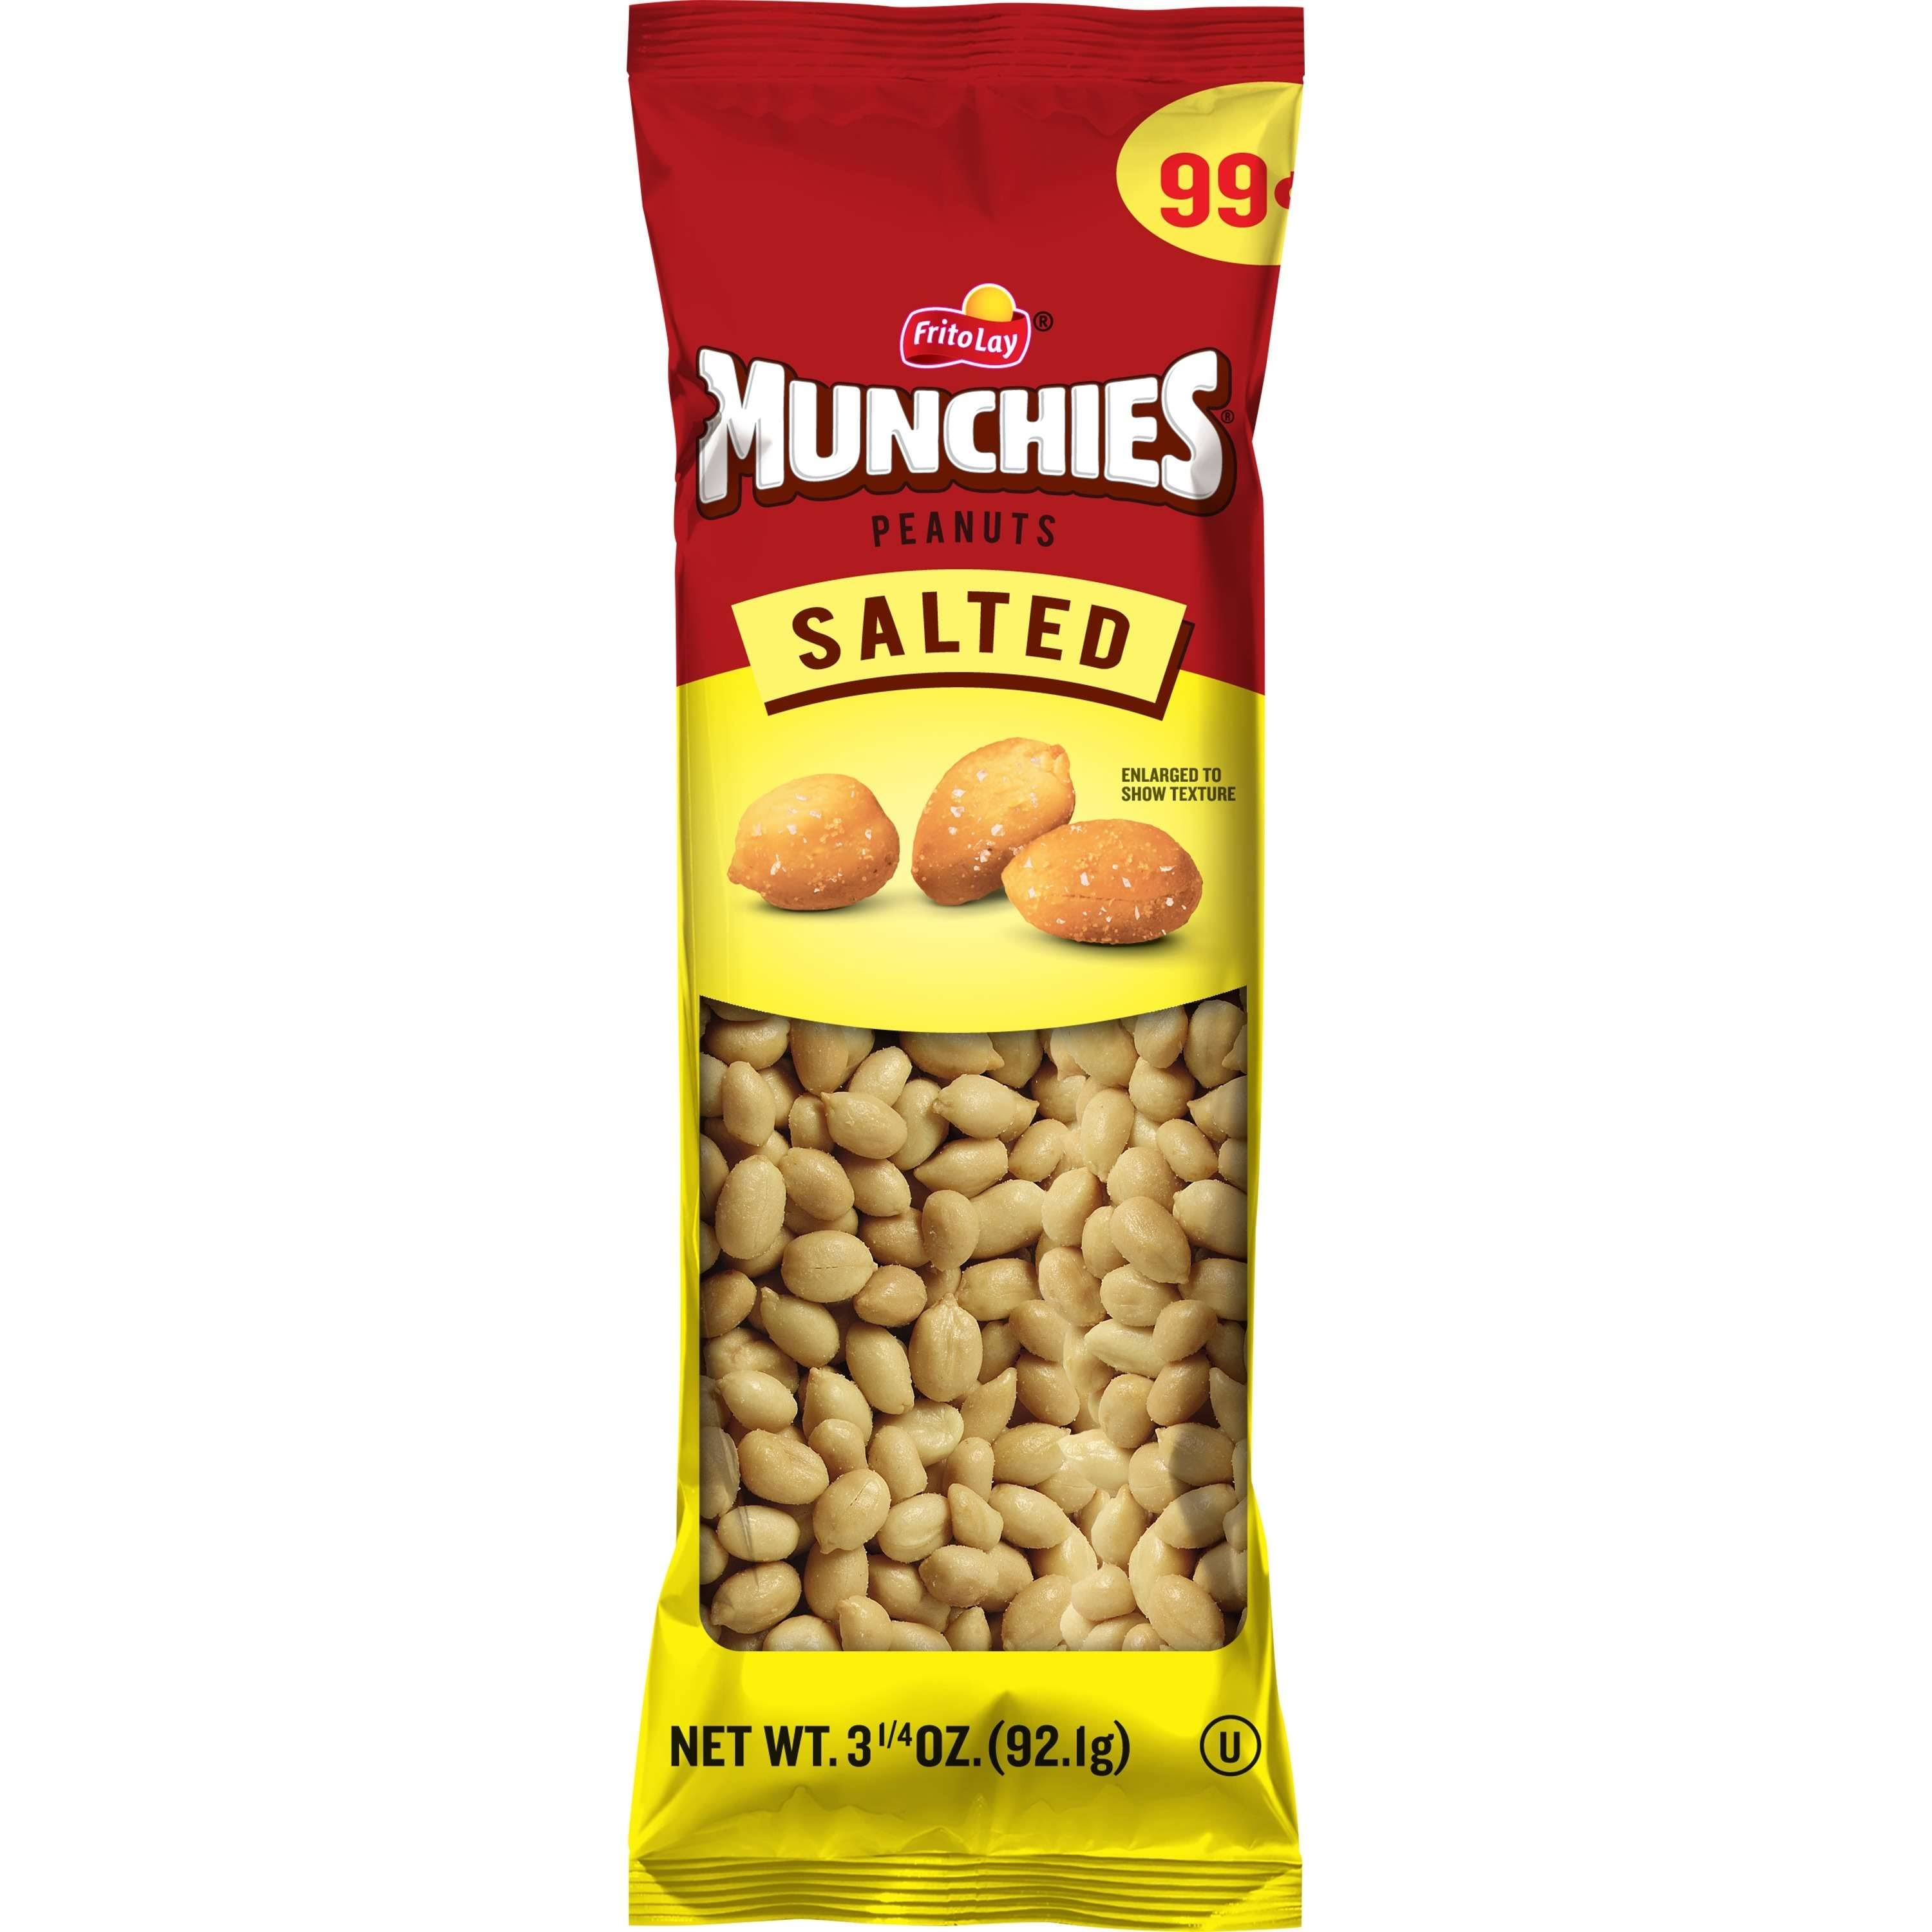 Munchies Salted Peanuts - 3-1/4oz